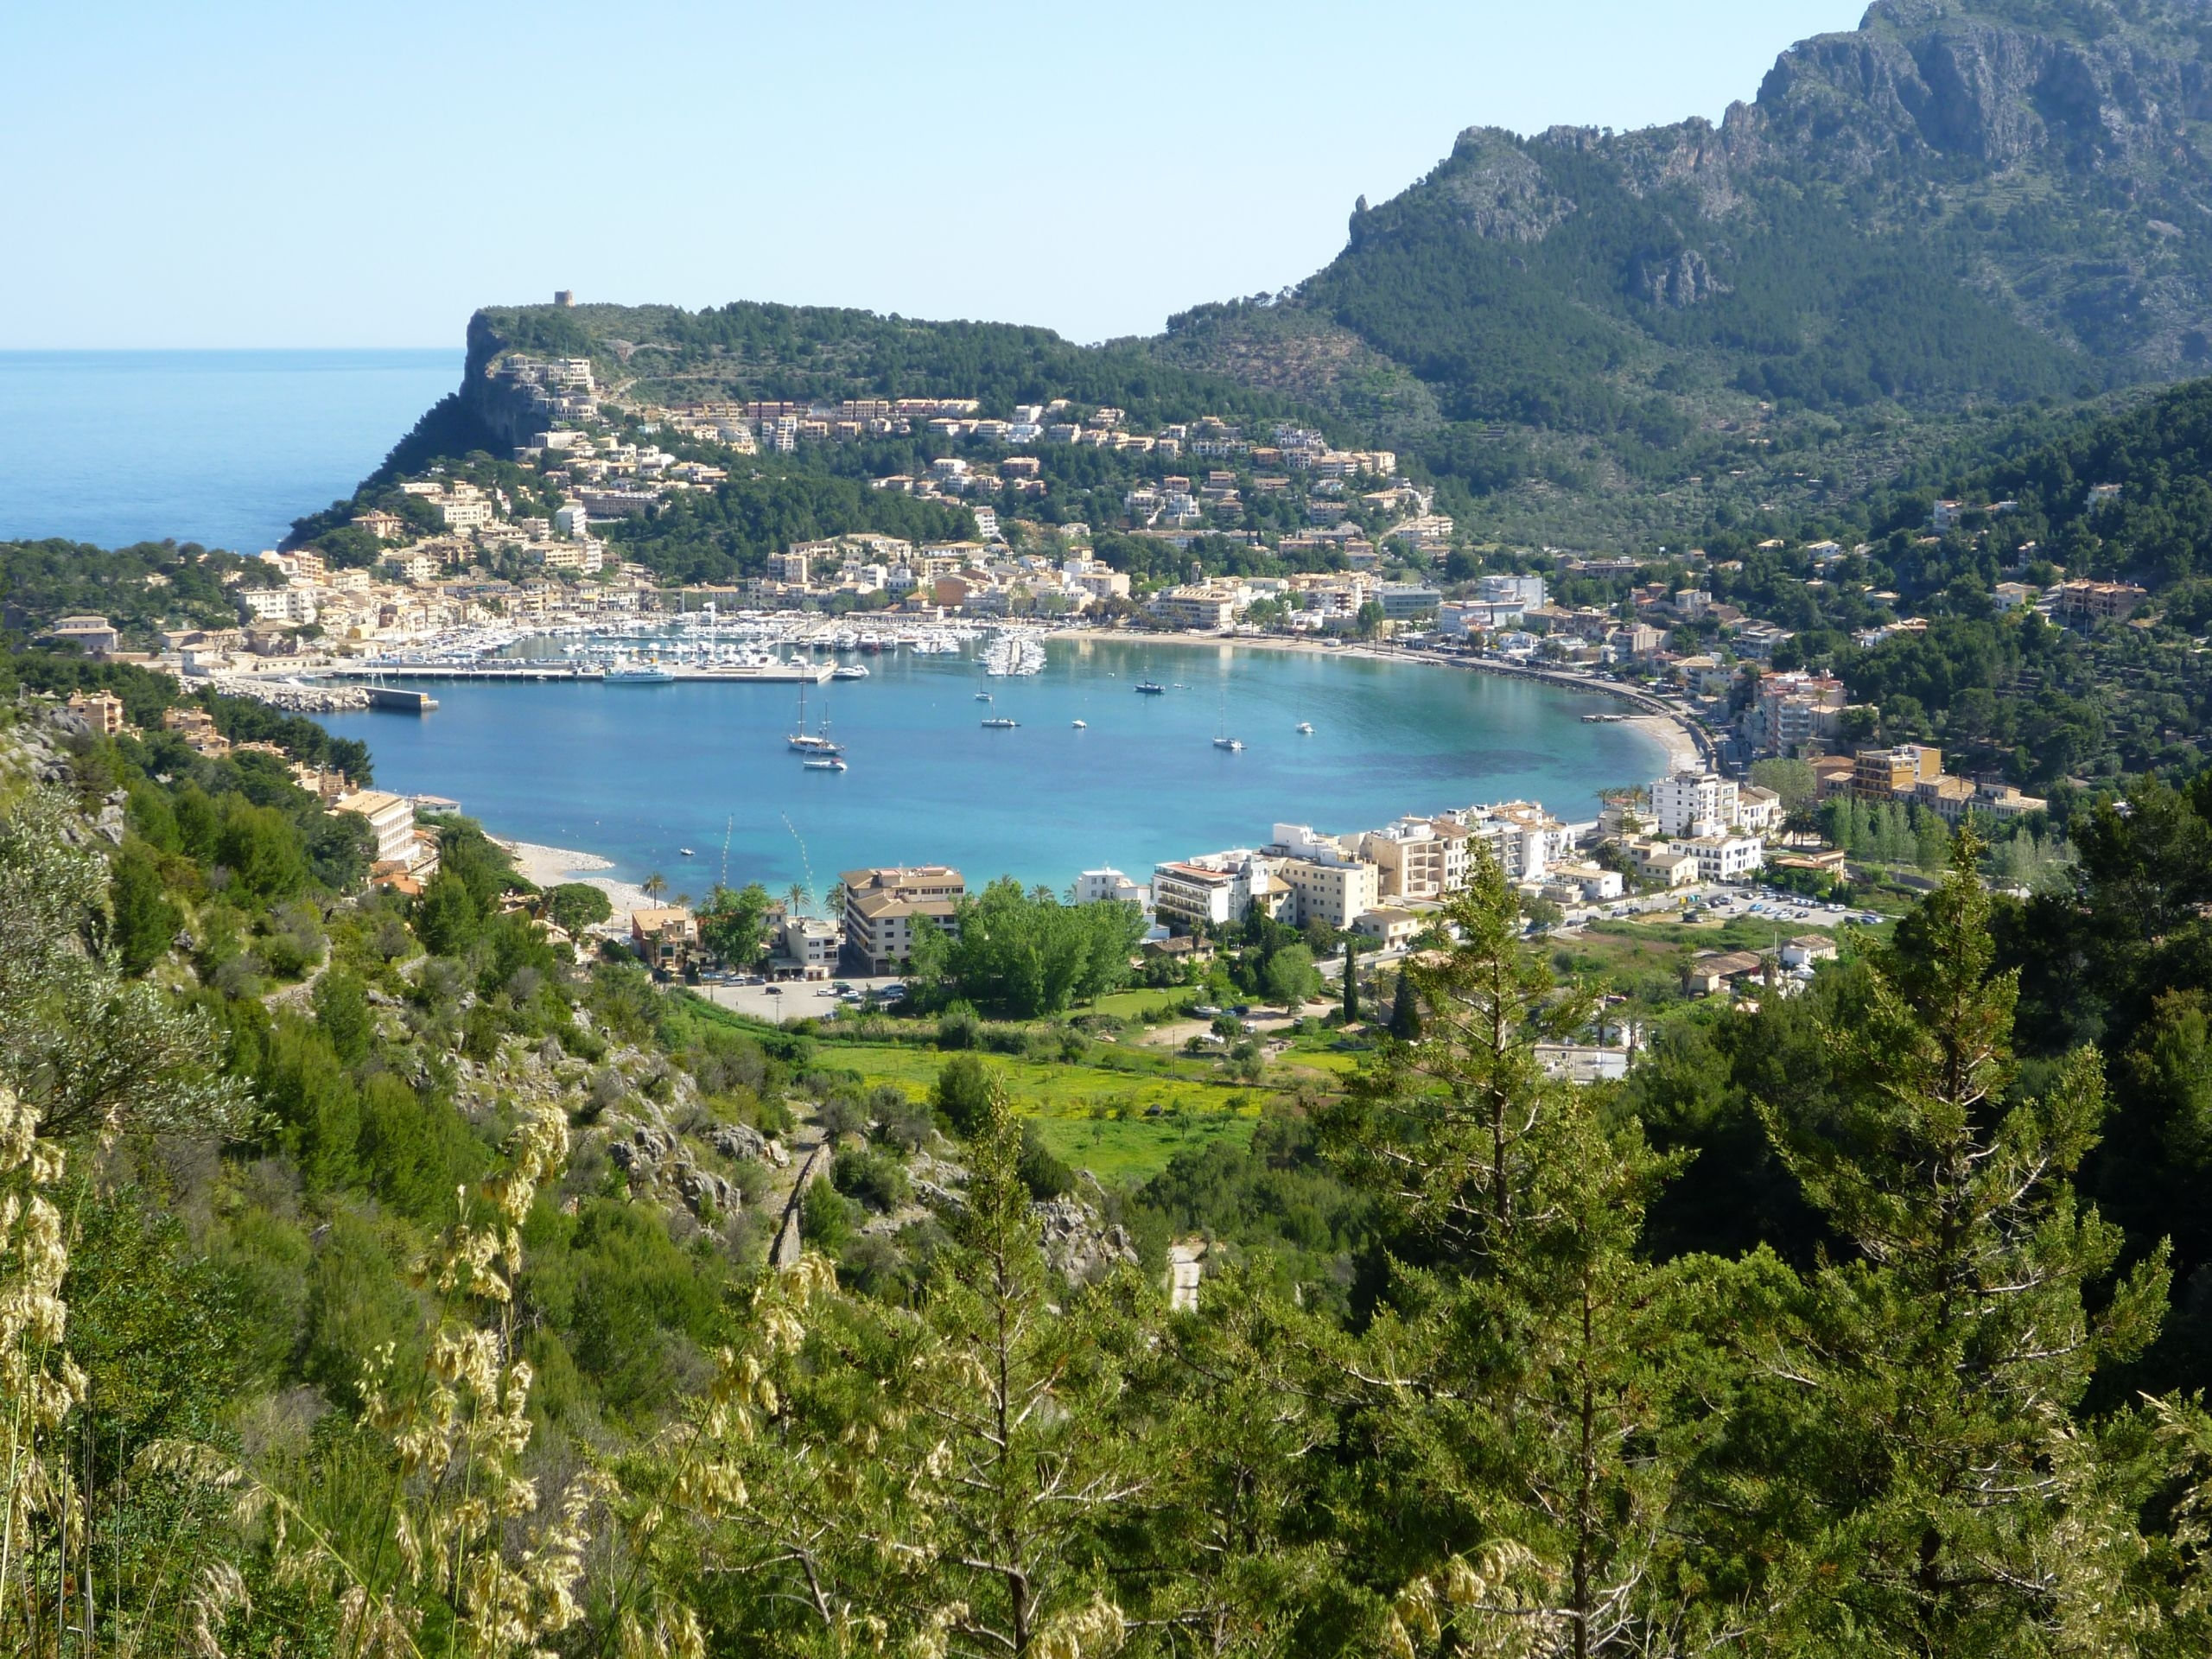 the-landscape-of-soller-is-lush-and-green-dotted-with-f-secret-world